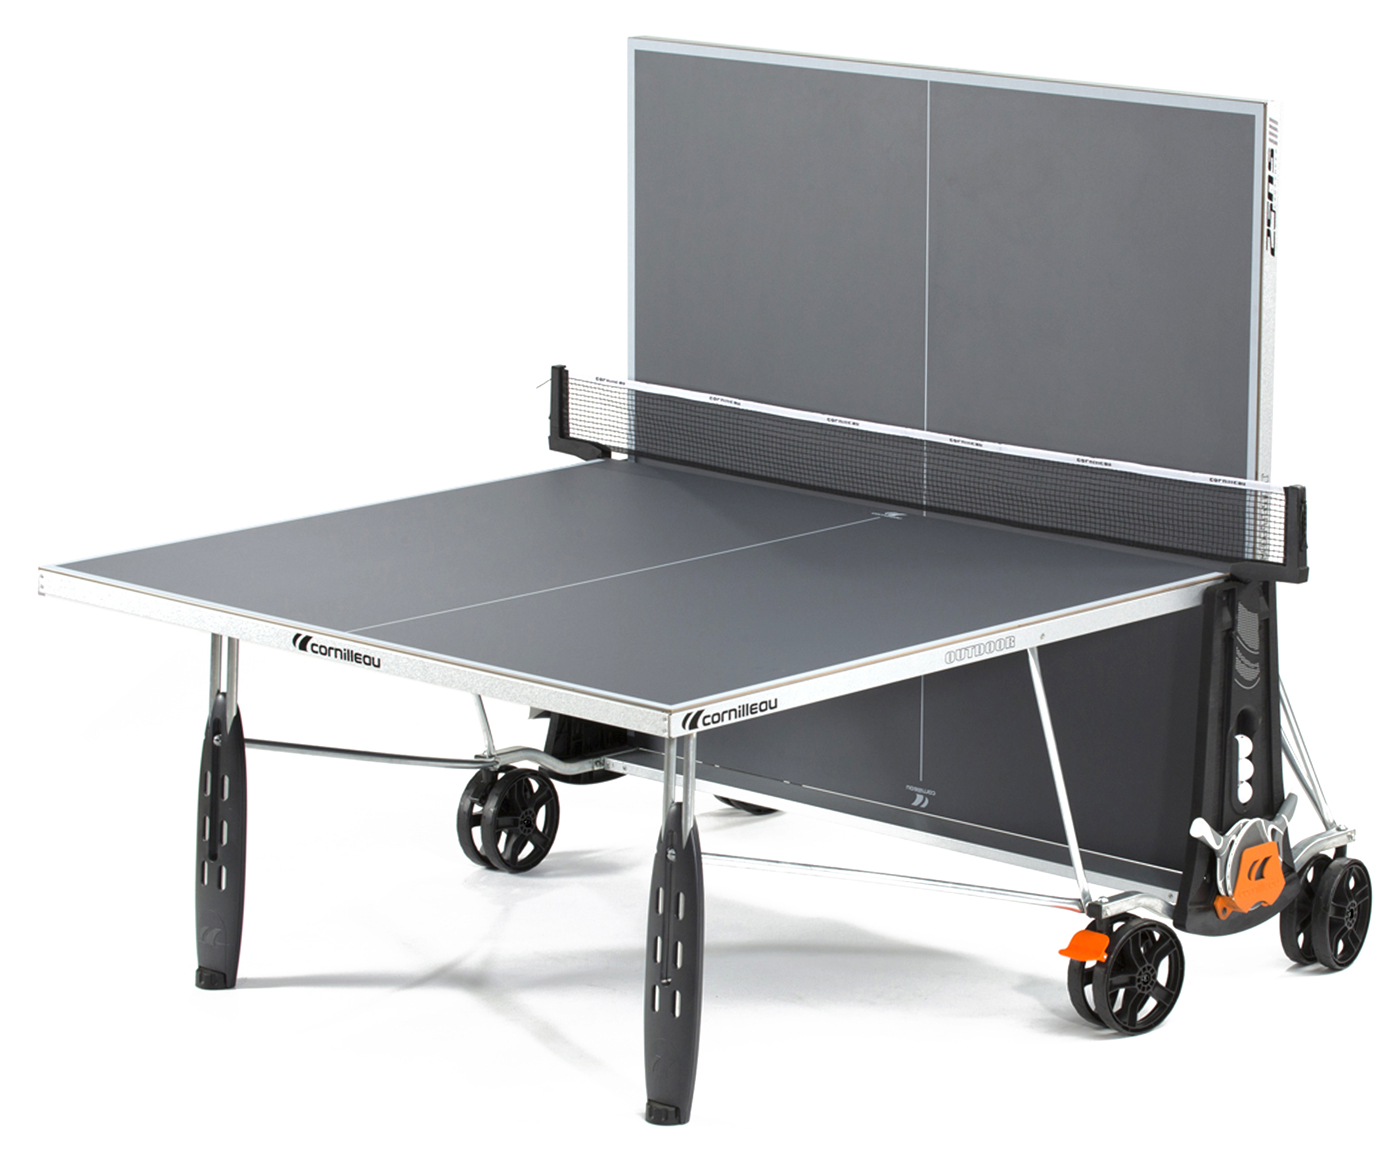 cornilleau 250s crossover indoor outdoor gray ping pong table. Black Bedroom Furniture Sets. Home Design Ideas